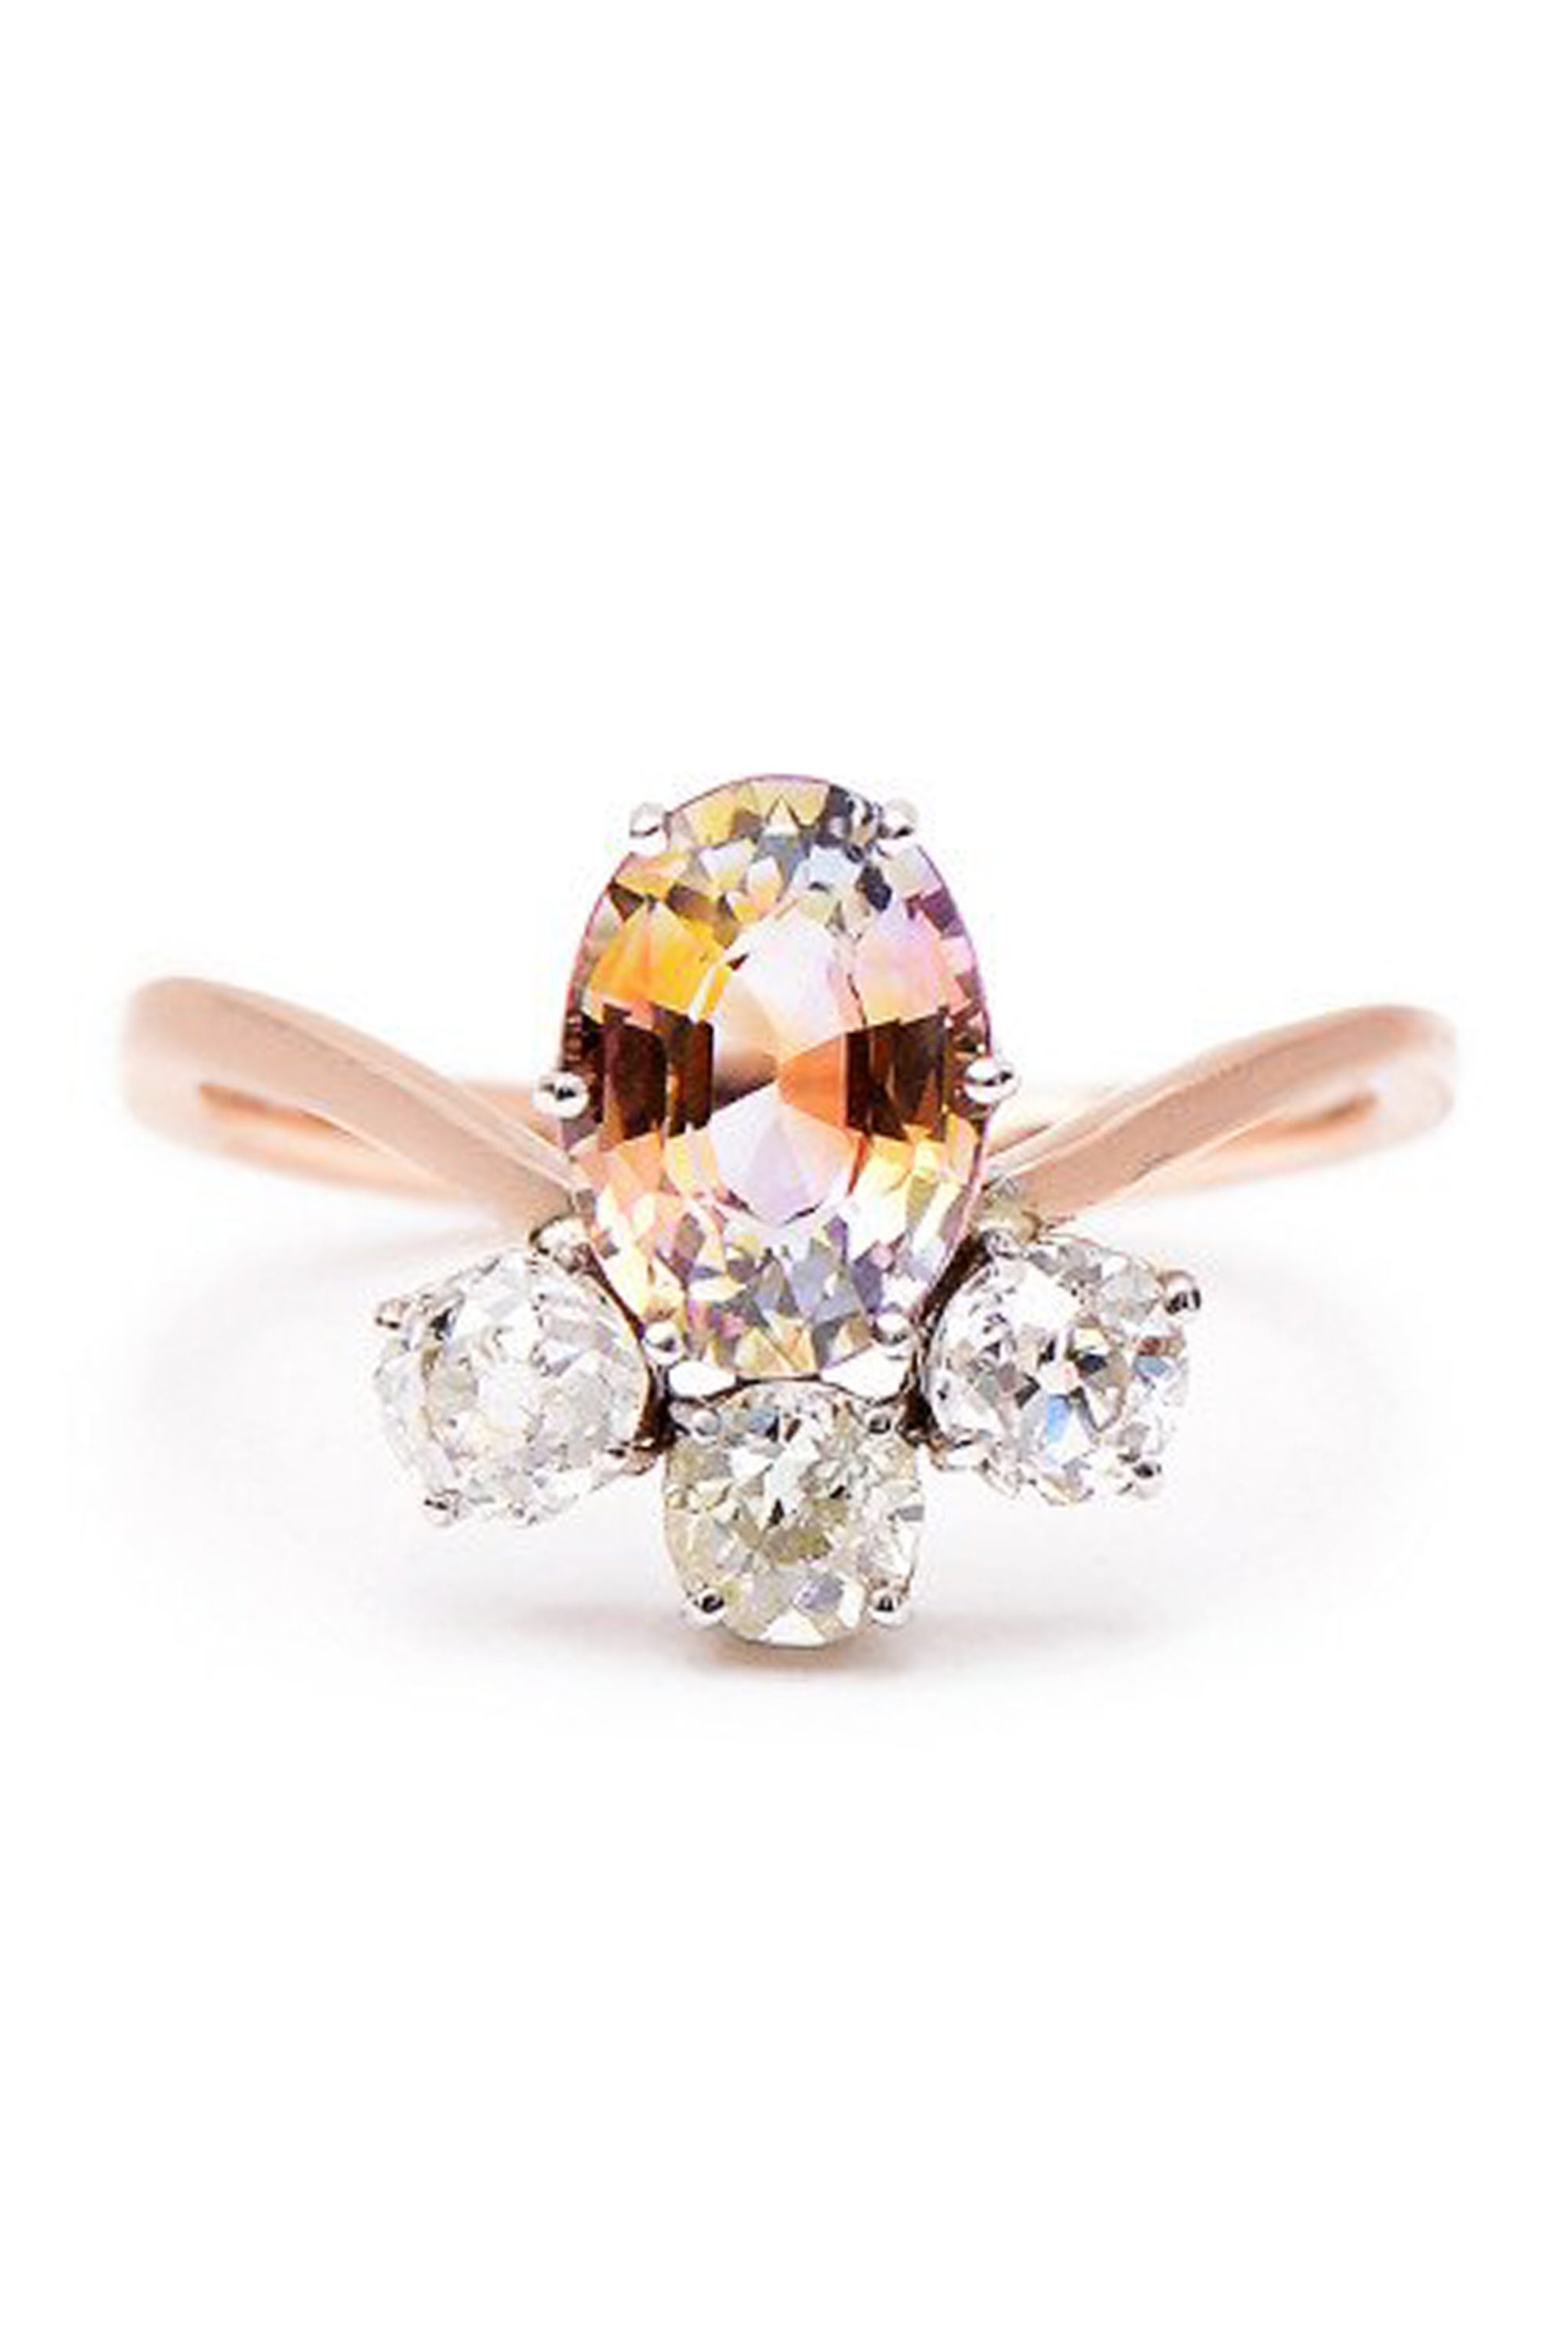 27 Unique Engagement Rings Beautiful Non Diamond and Unusual Engagement Rings